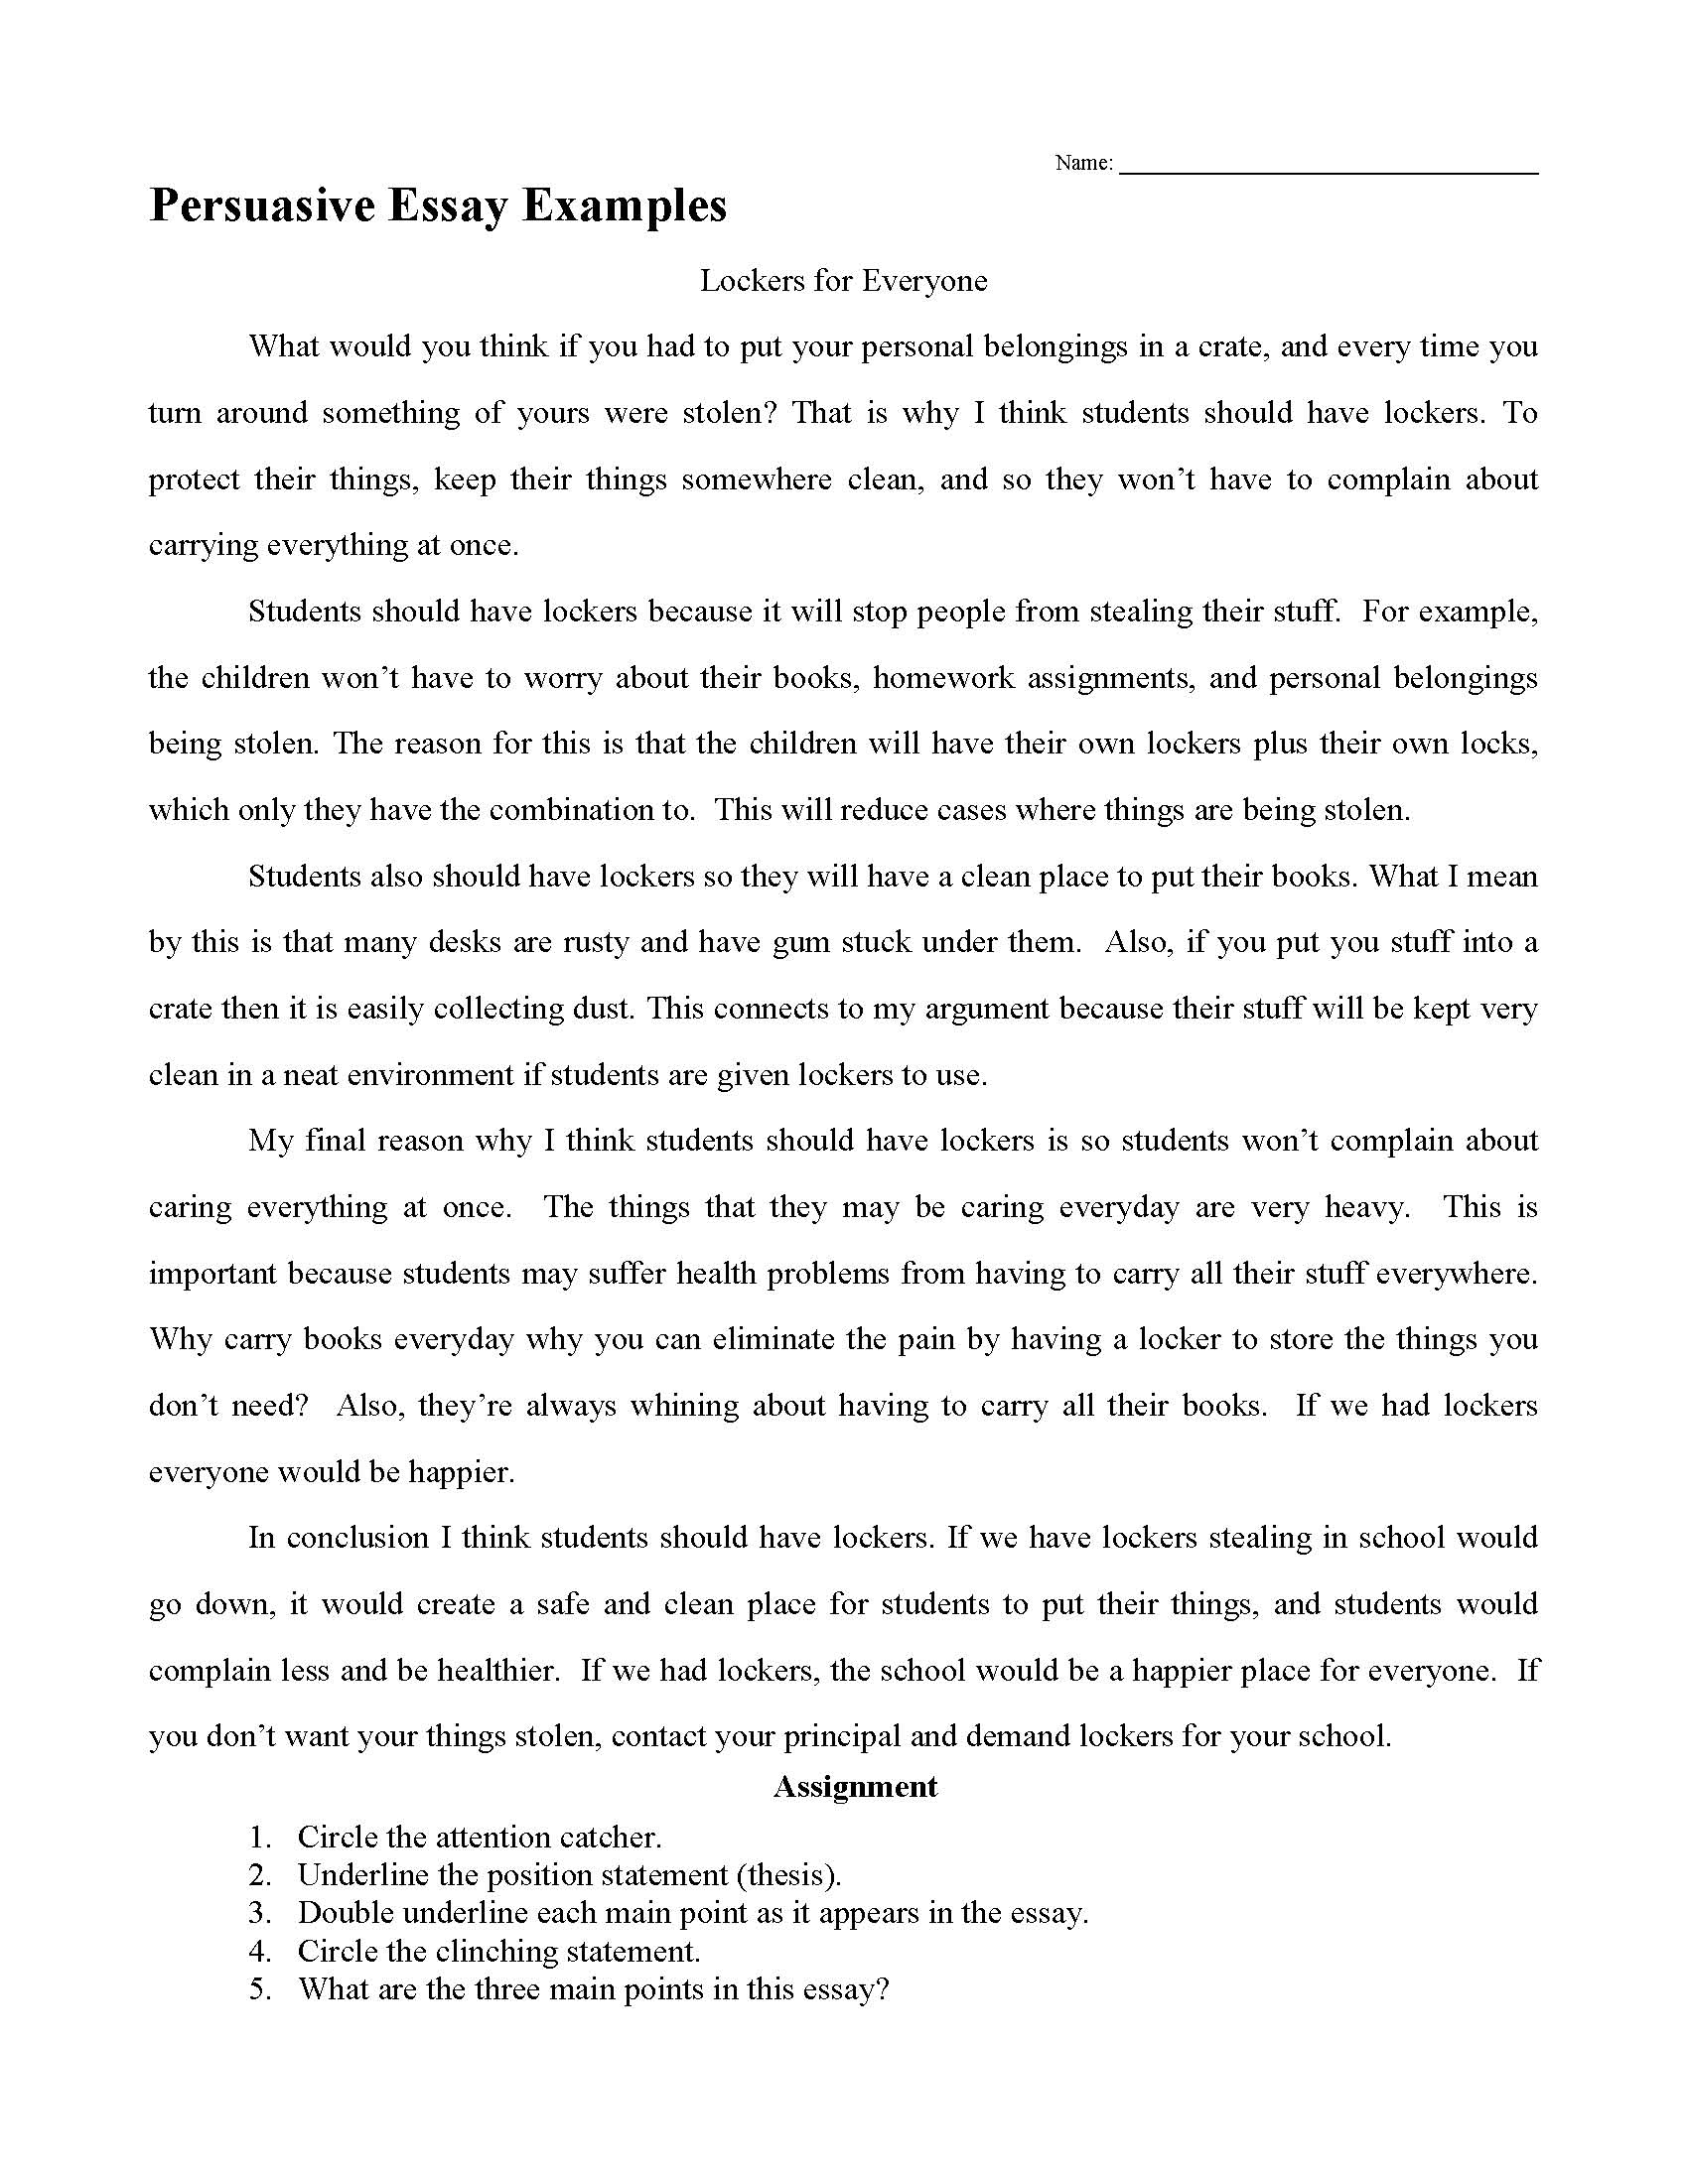 002 Essay Example Persuasive Examples Archaicawful Definition Literature Meaning And Literary Full